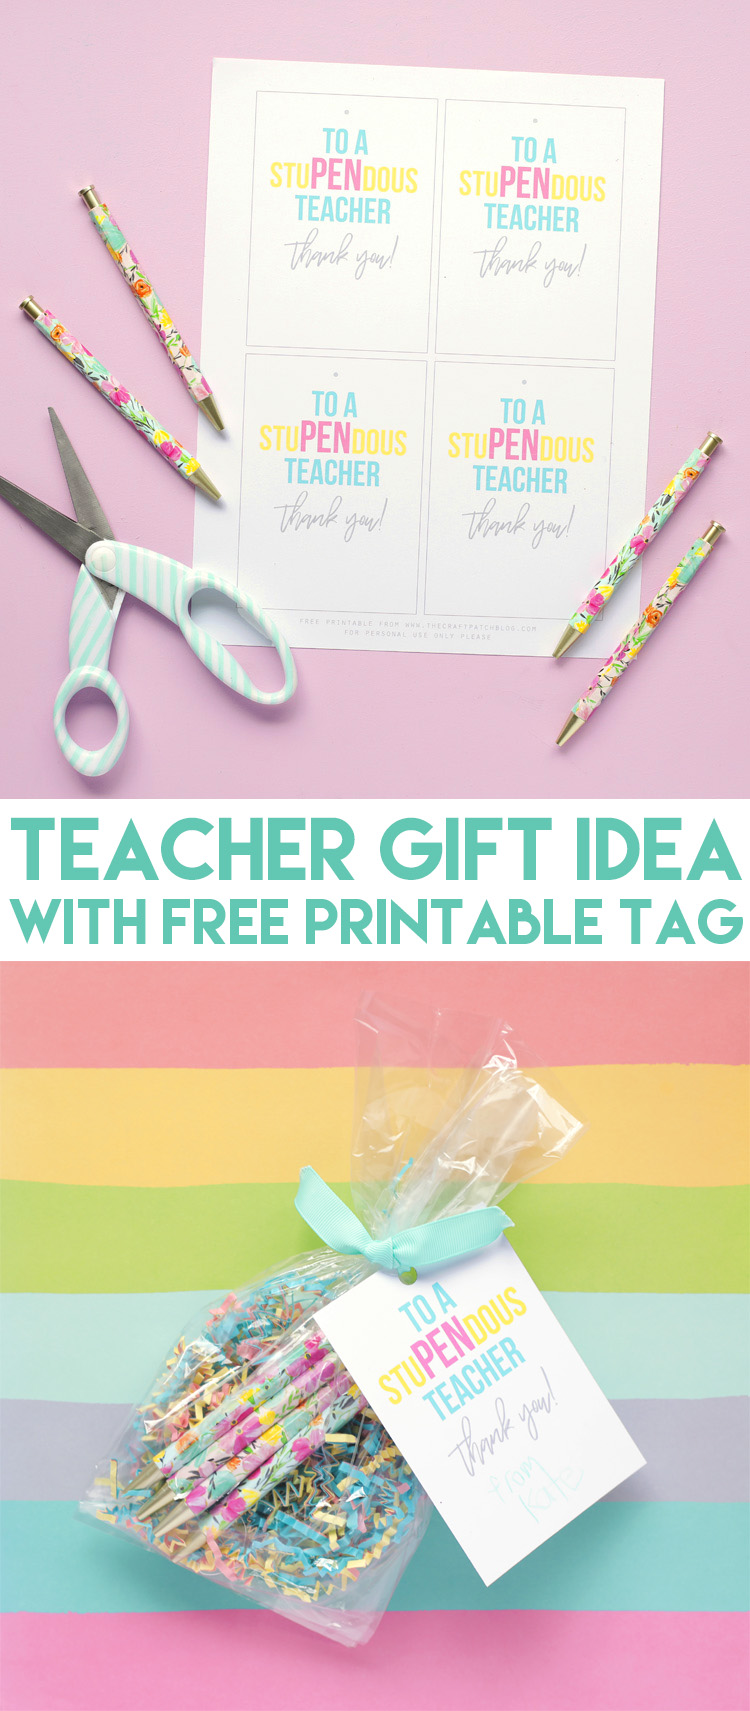 photo regarding Free Printable Teacher Appreciation Tags identify StuPENdous Instructor Appreciation Present Strategy with Absolutely free